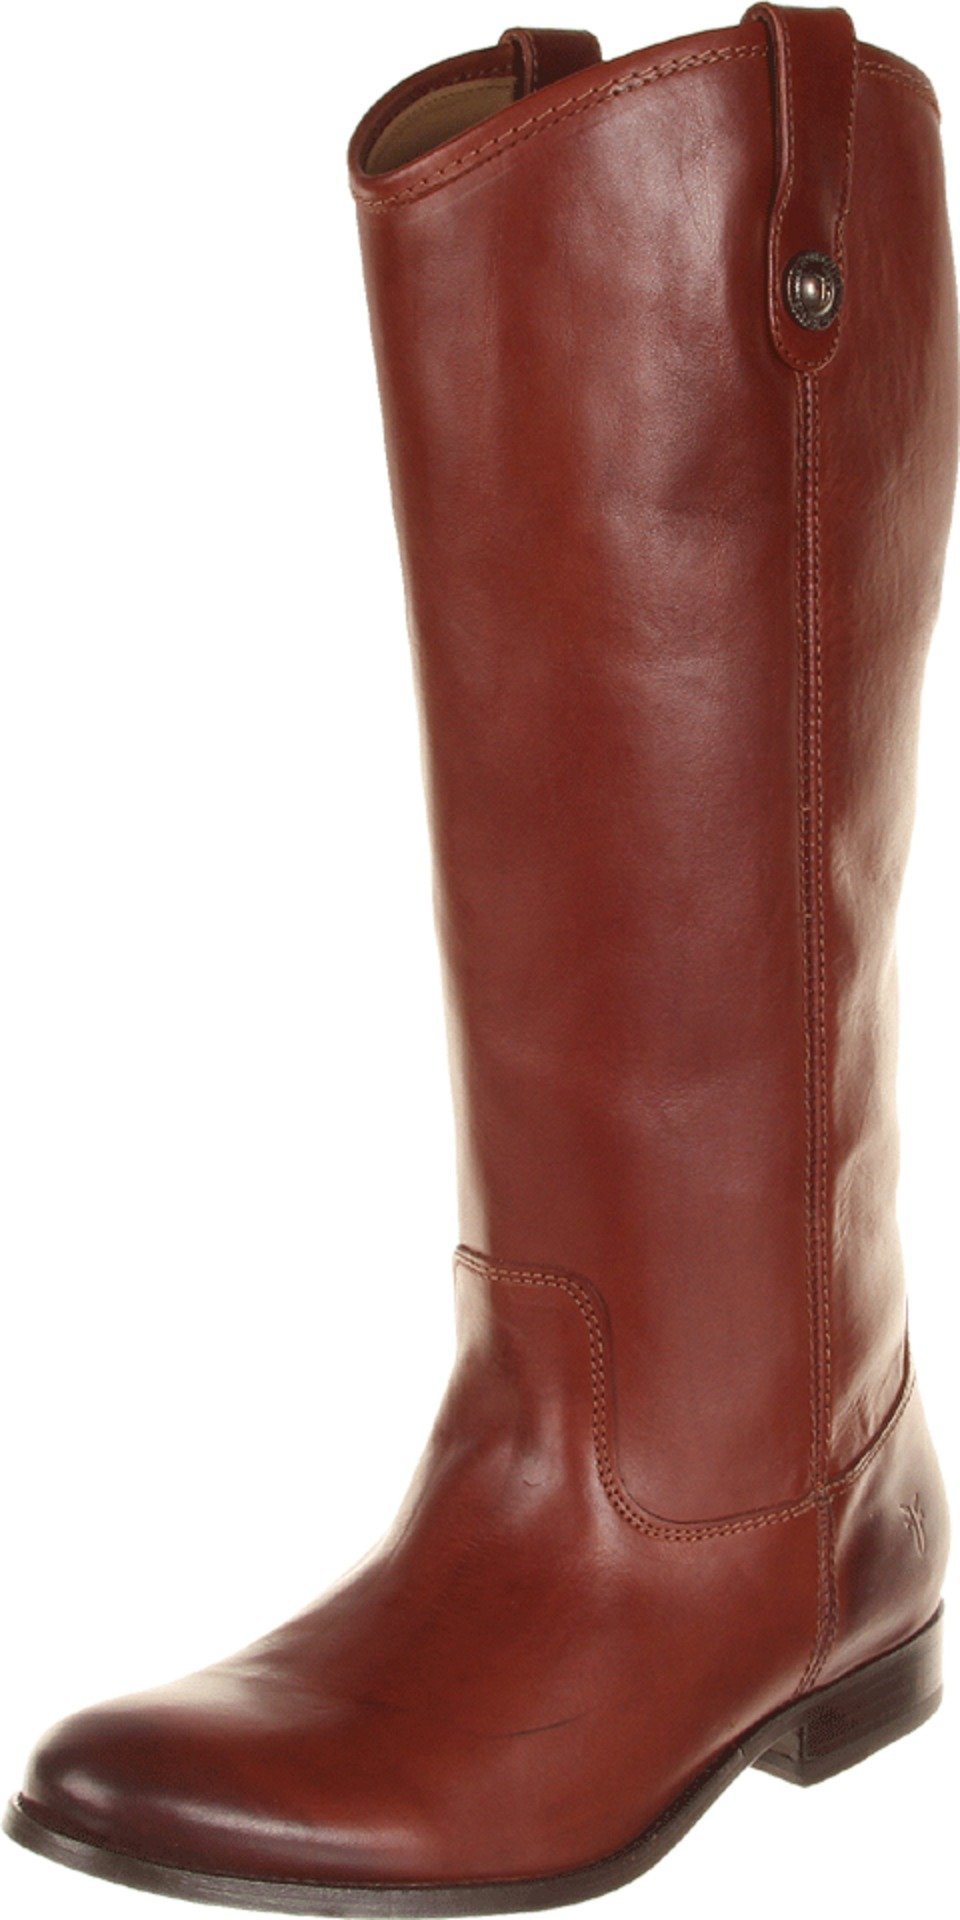 FRYE Women's Melissa Button Boot, Cognac Wide Calf Smooth Vintage Leather, 7 M US by FRYE